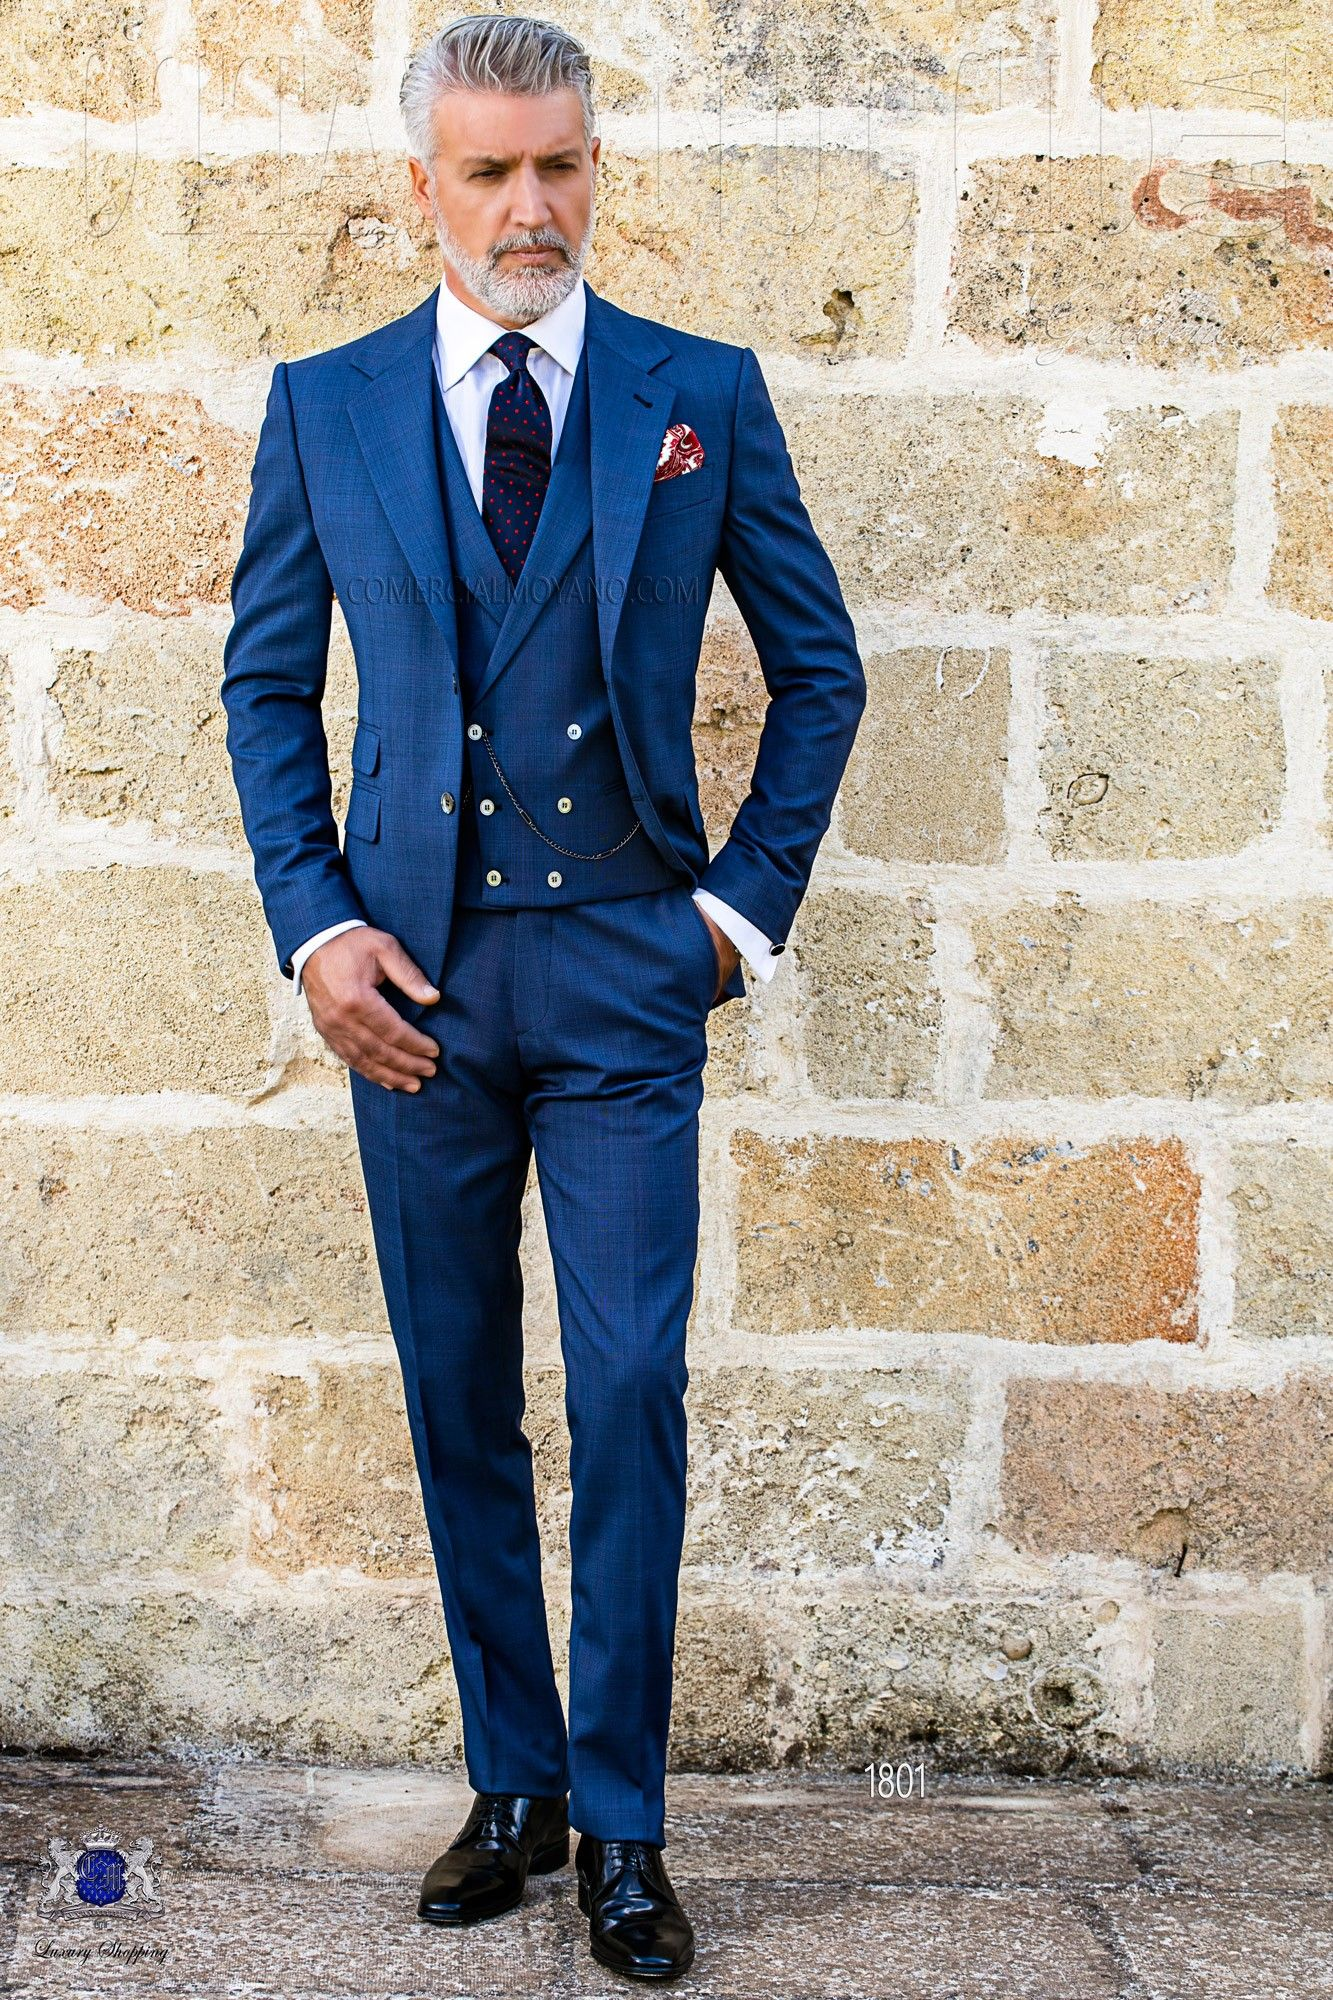 Costume homme bleu ucprince of walesud wedding suits wales and bespoke